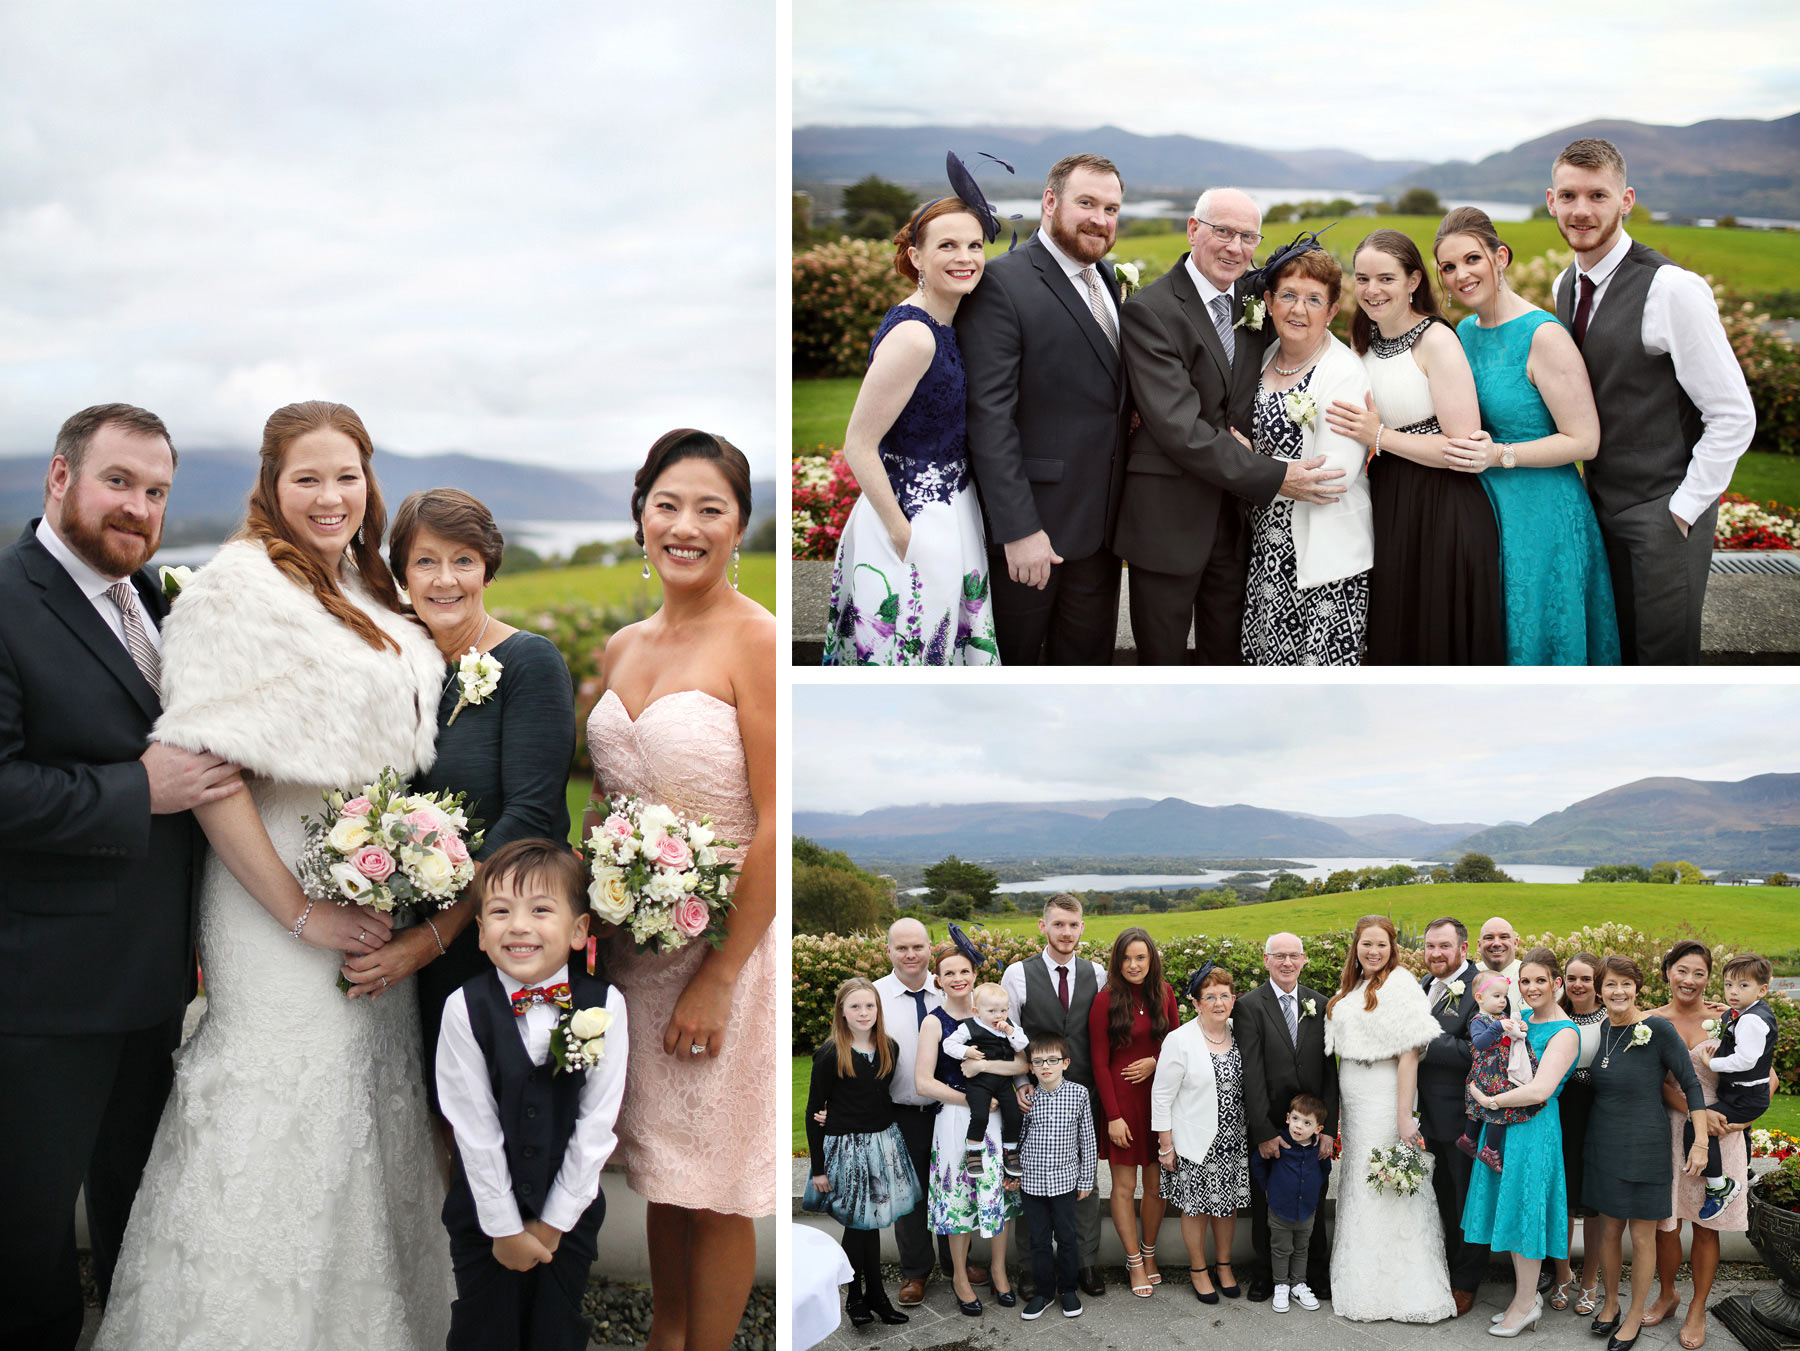 29-Kilarney-Ireland-Wedding-Photographer-by-Andrew-Vick-Photography-Fall-Autumn-Destination-Bride-Groom-Family-Becca-and-Donal.jpg